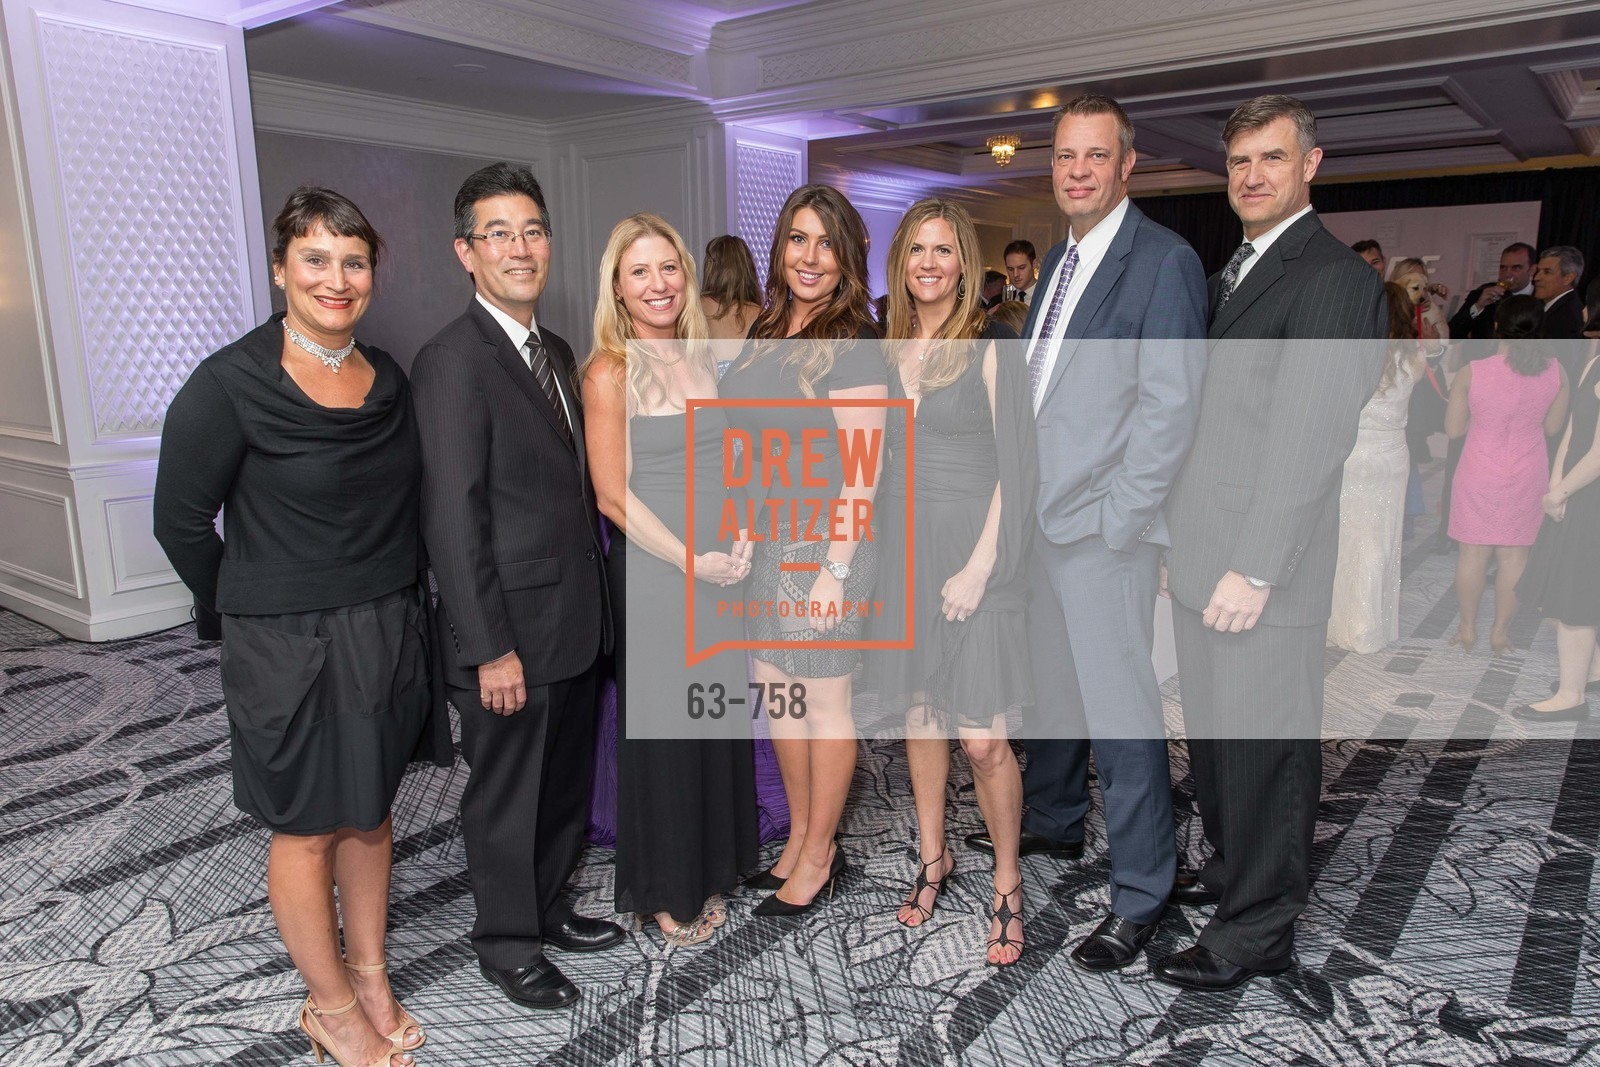 Soraya Petroff, Brian Nakamoto, Sarah Marchi, Erica Johnson, Robin Bjornstad, Peter Kruger, Wayne Mielke, JUVENILE DIABETES RESEARCH FOUNDATION  Hope Gala, US, May 30th, 2015,Drew Altizer, Drew Altizer Photography, full-service agency, private events, San Francisco photographer, photographer california